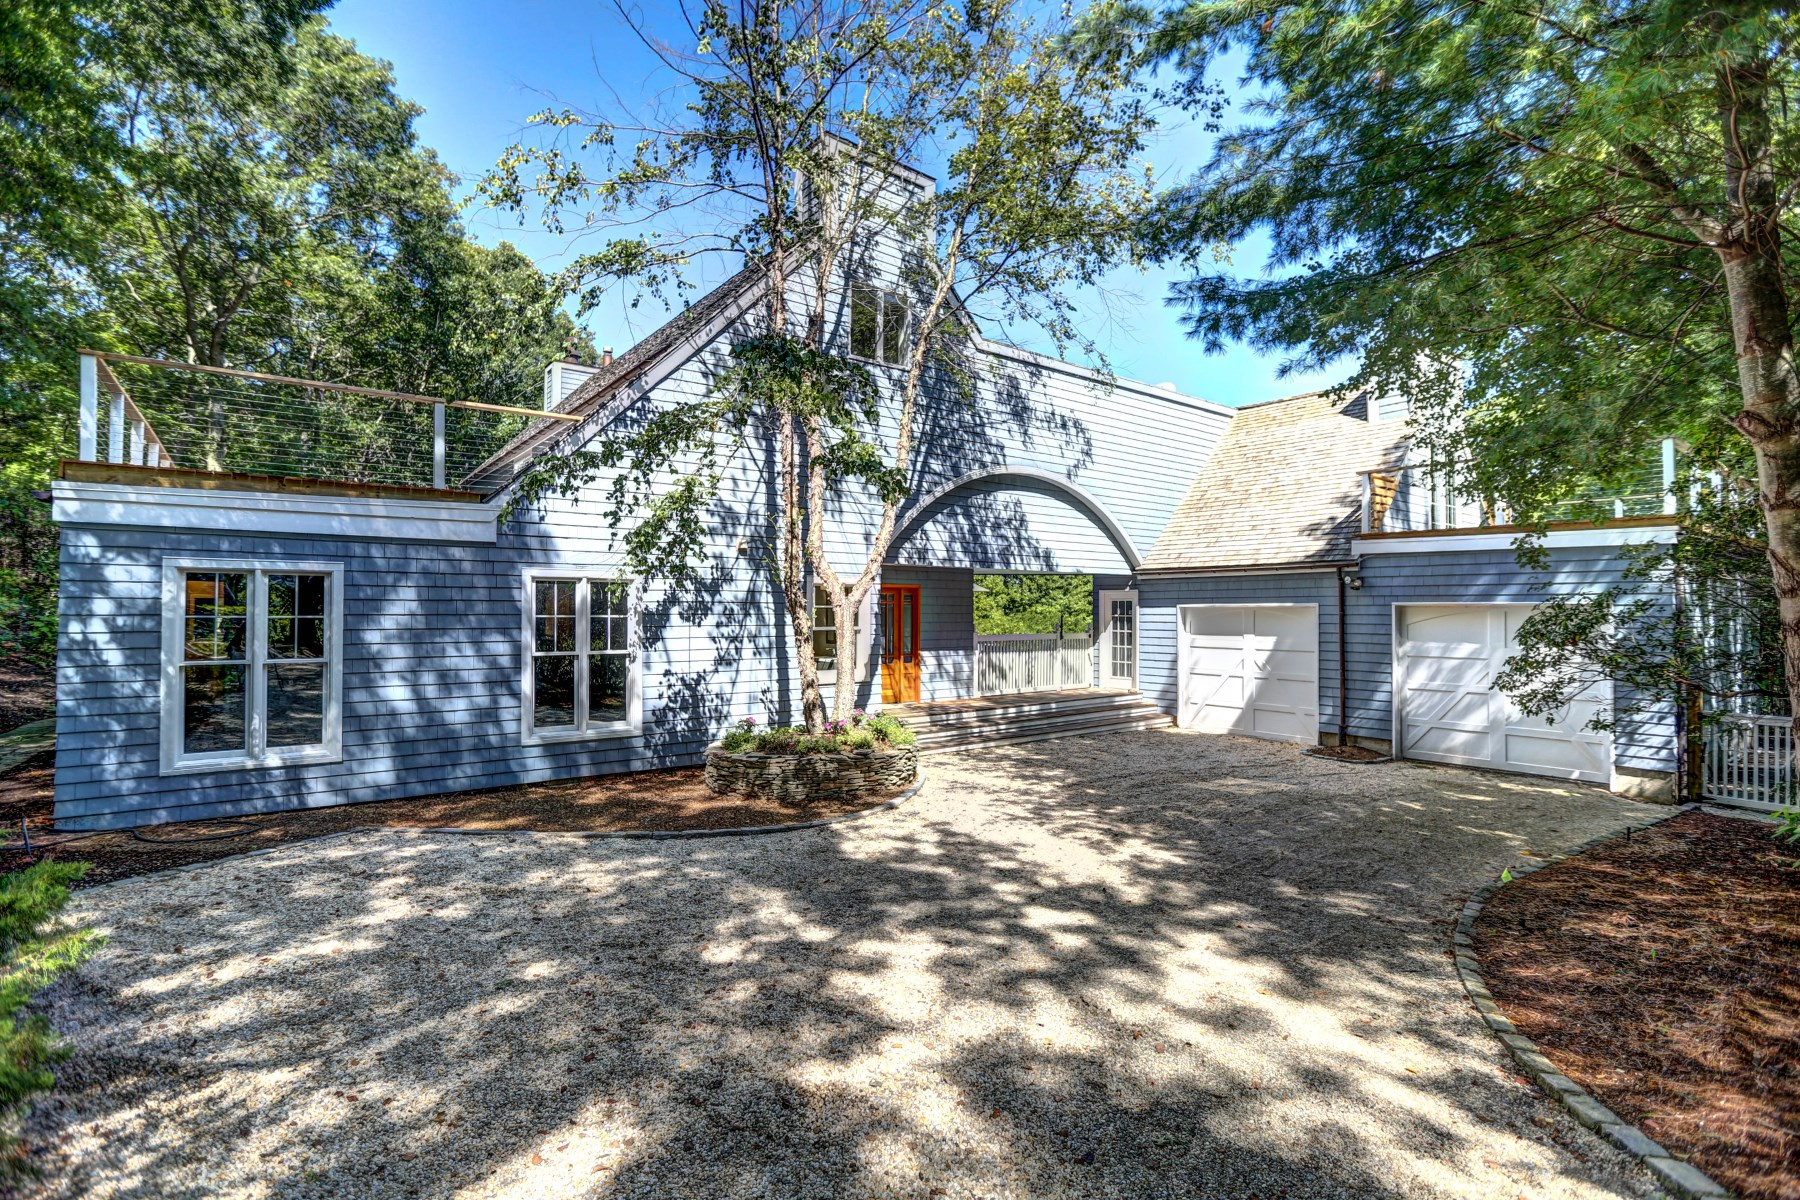 Single Family Home for Rent at NORTHSIDE HILLS PERFECTION Sag Harbor, New York 11963 United States